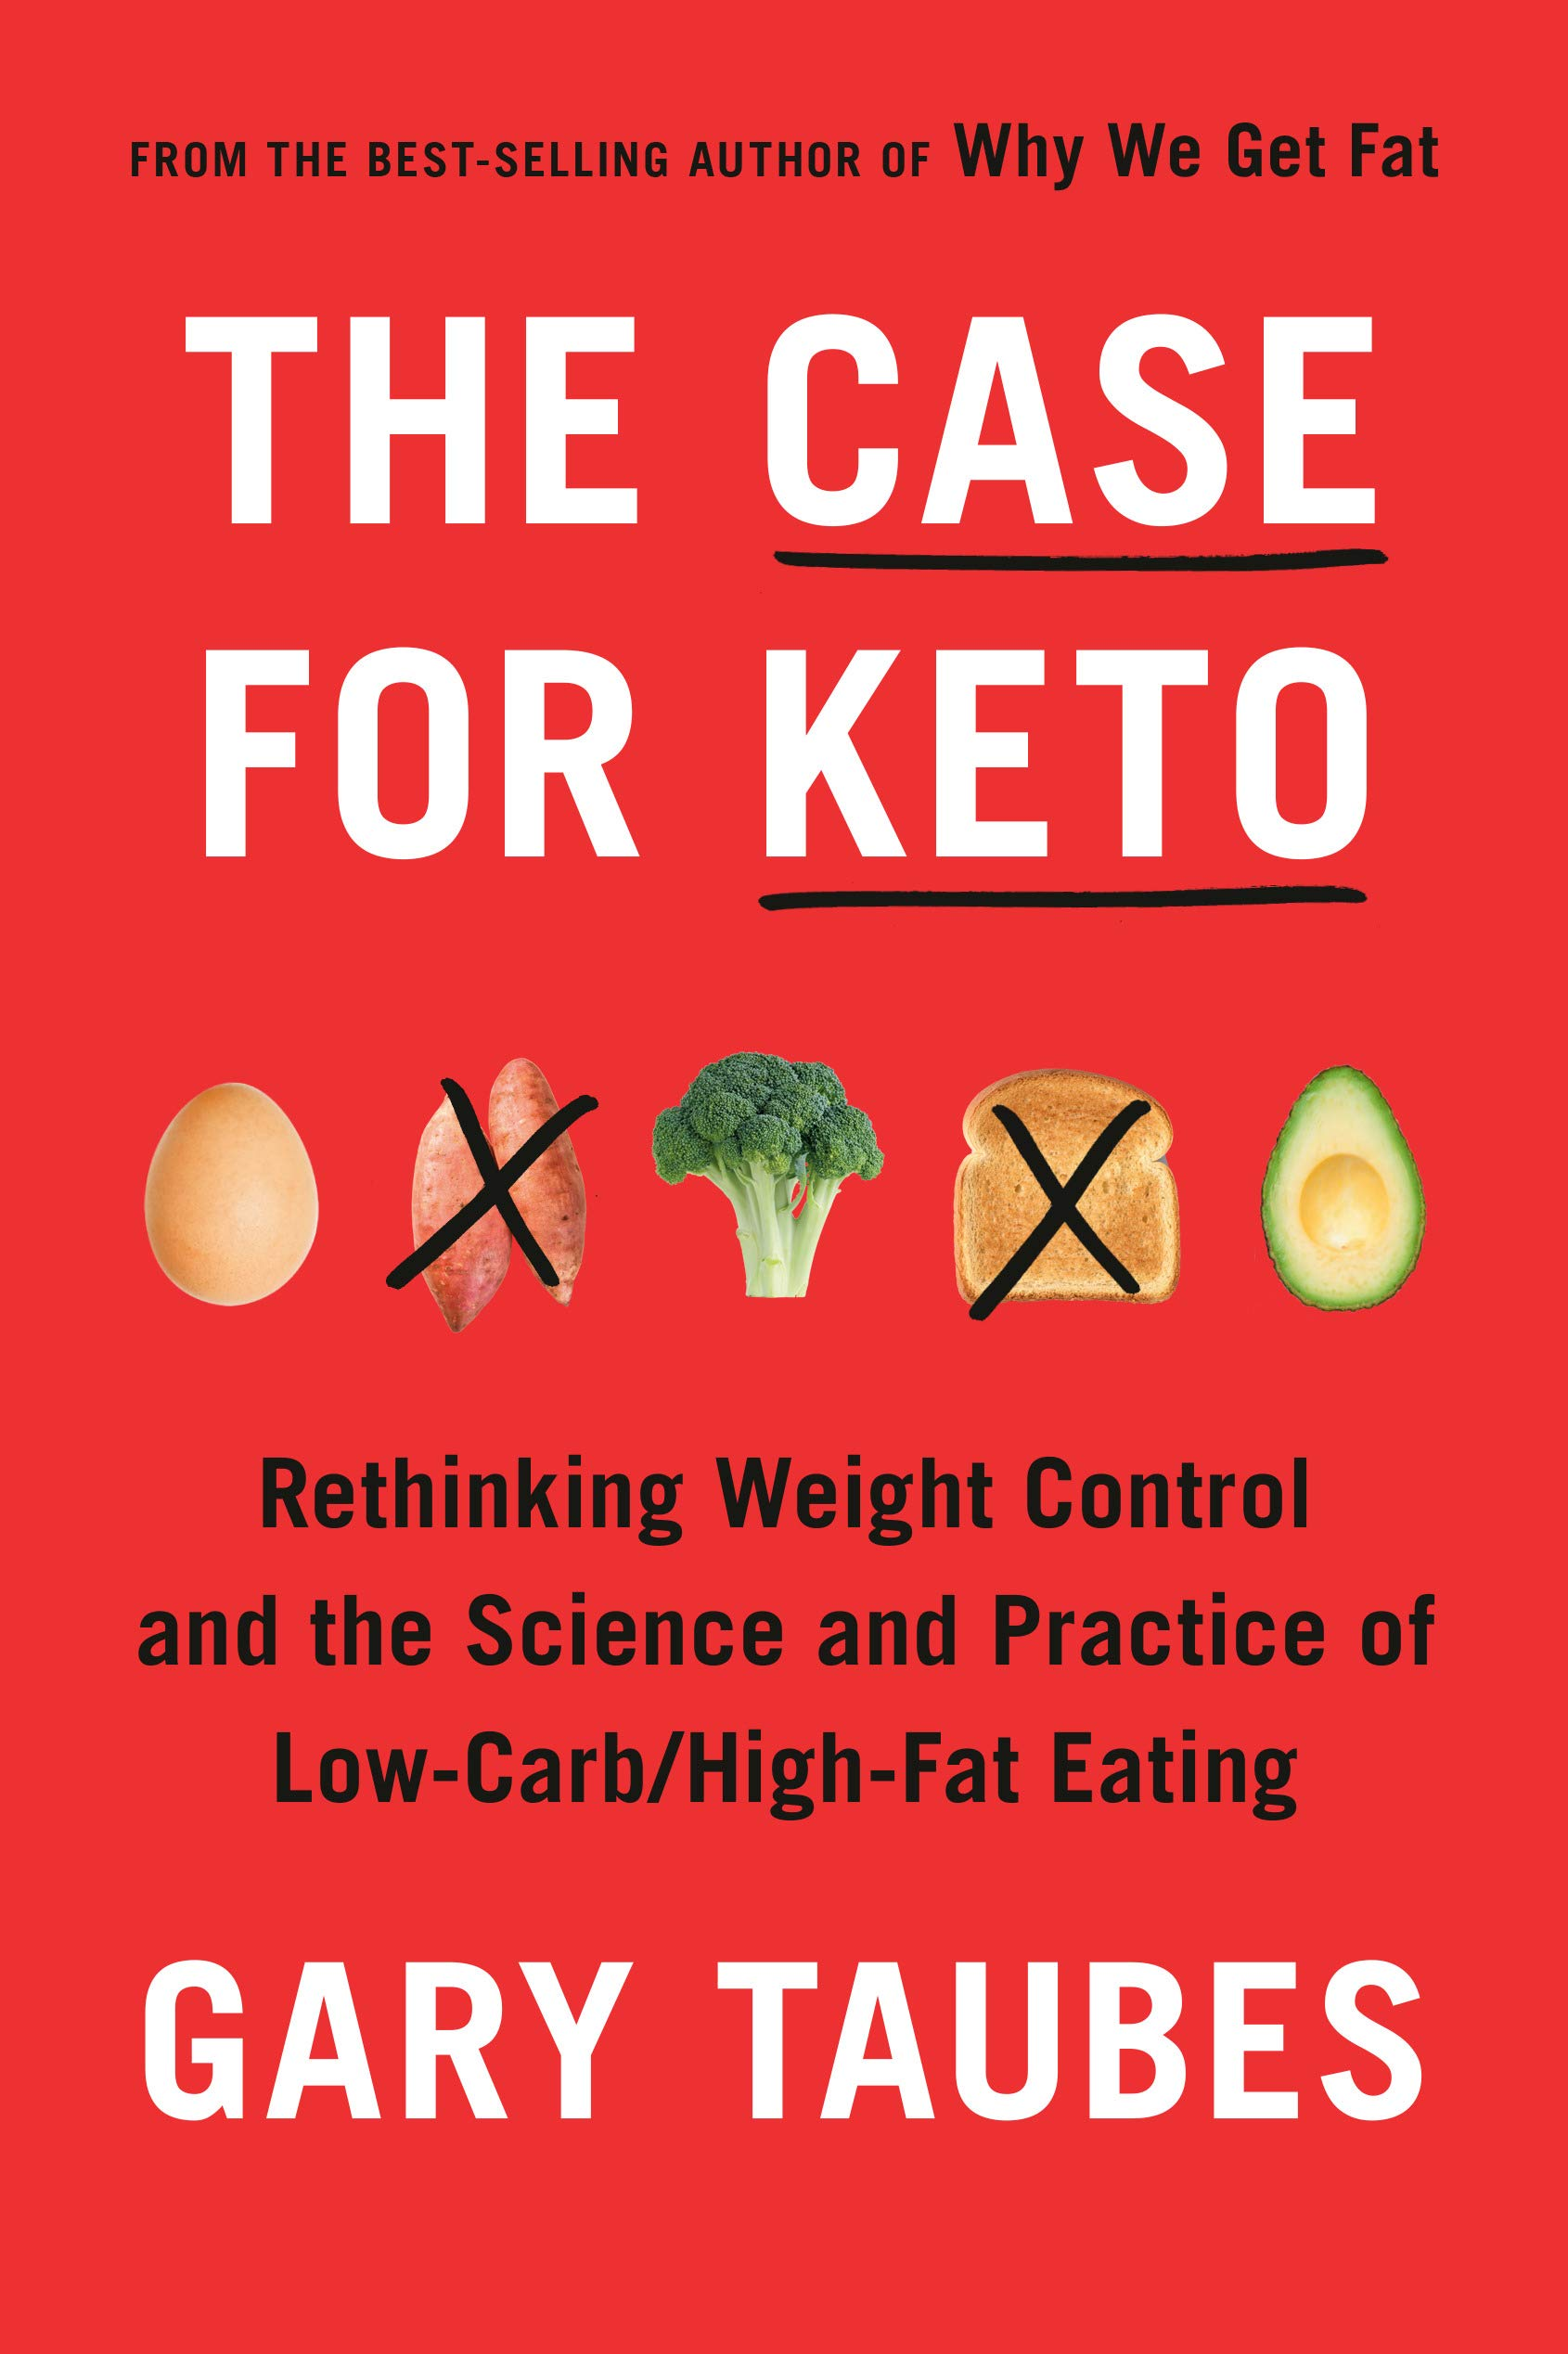 The Case for Keto: Rethinking Weight Control and the Science and Practice of Low-Carb/High-Fat Eat